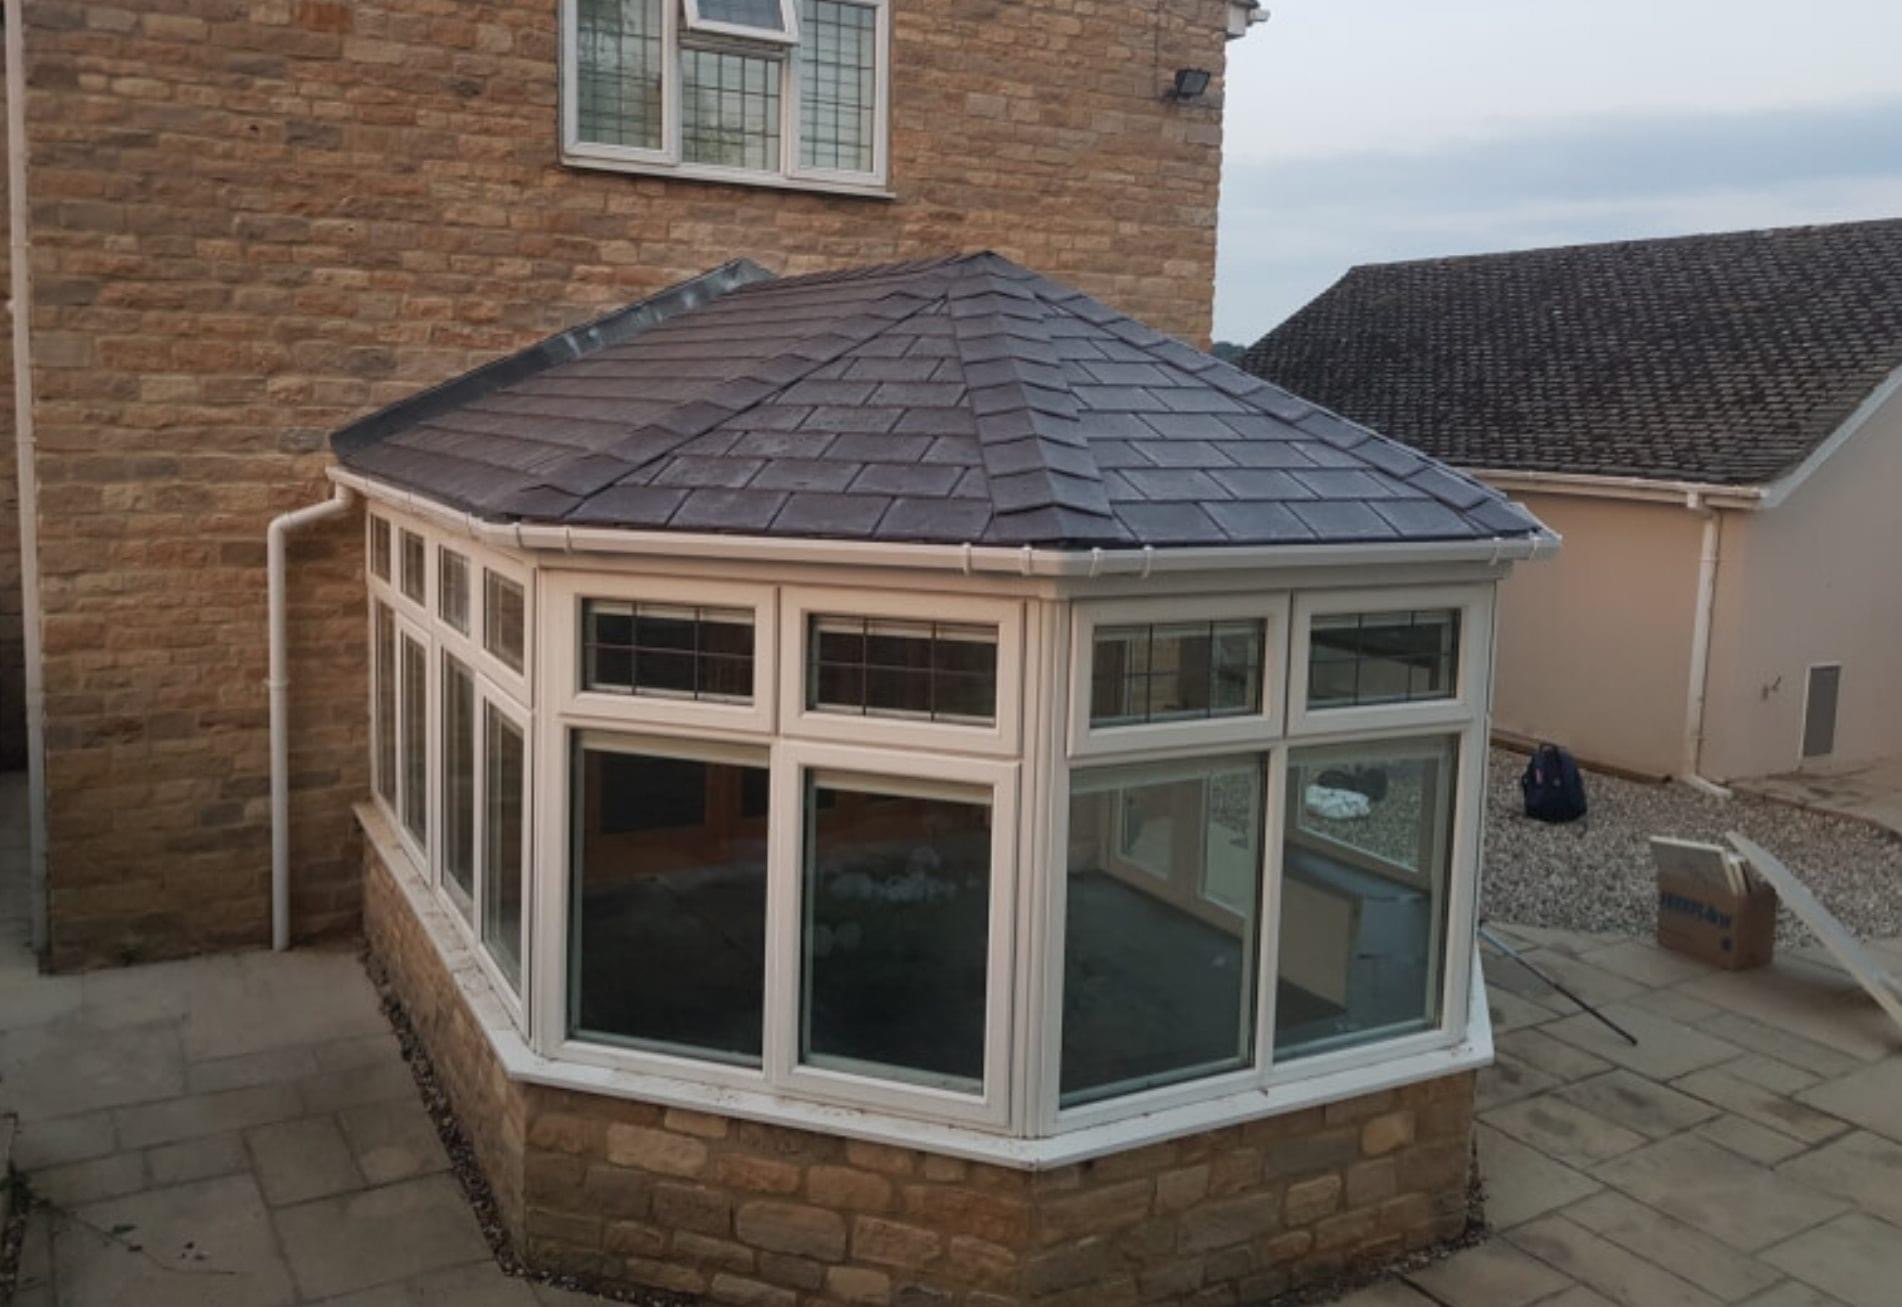 Dispelling Myths About Popular Conservatory Roof SolutionsDispelling Myths About Popular Conservatory Roof Solutions